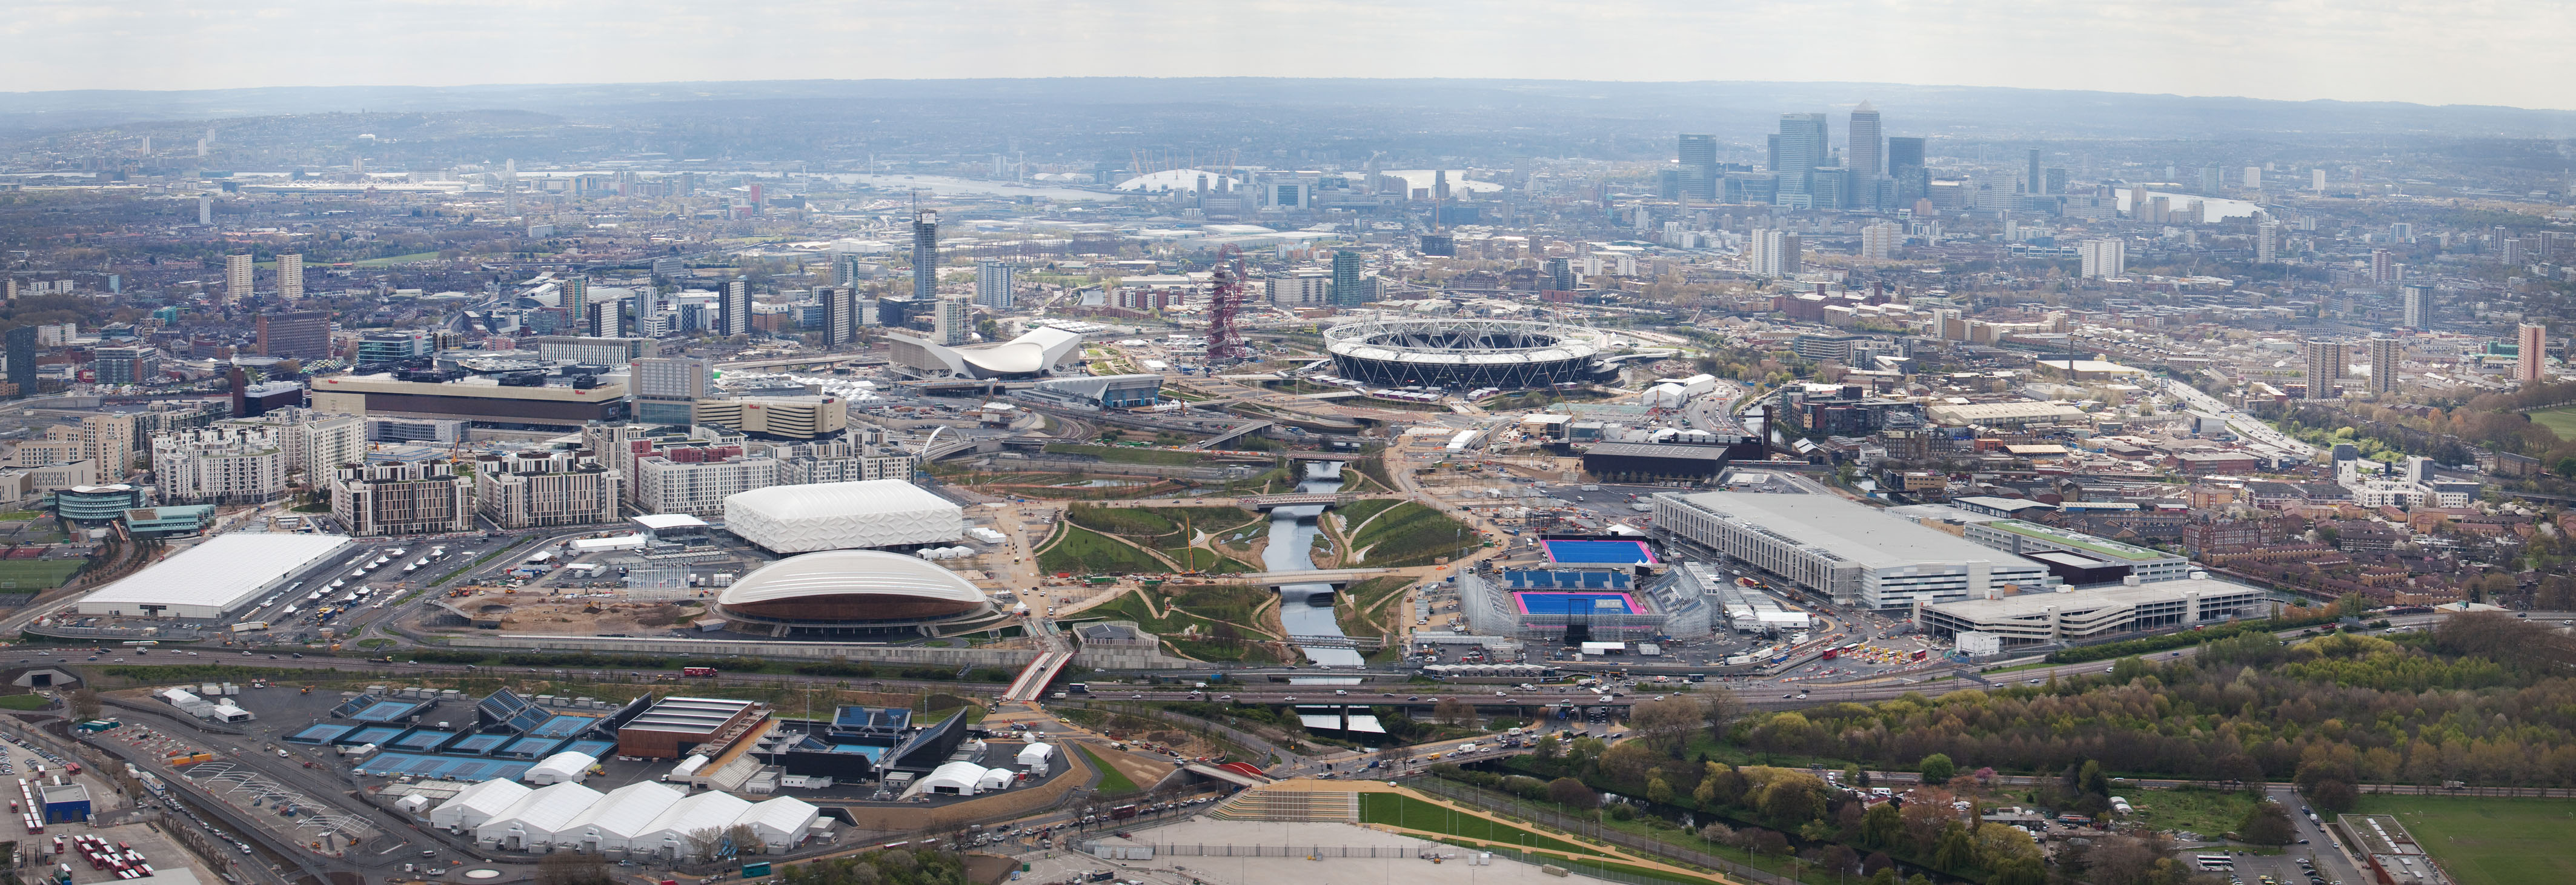 Olympic Stadium Aerial View Aerial View of The Olympic